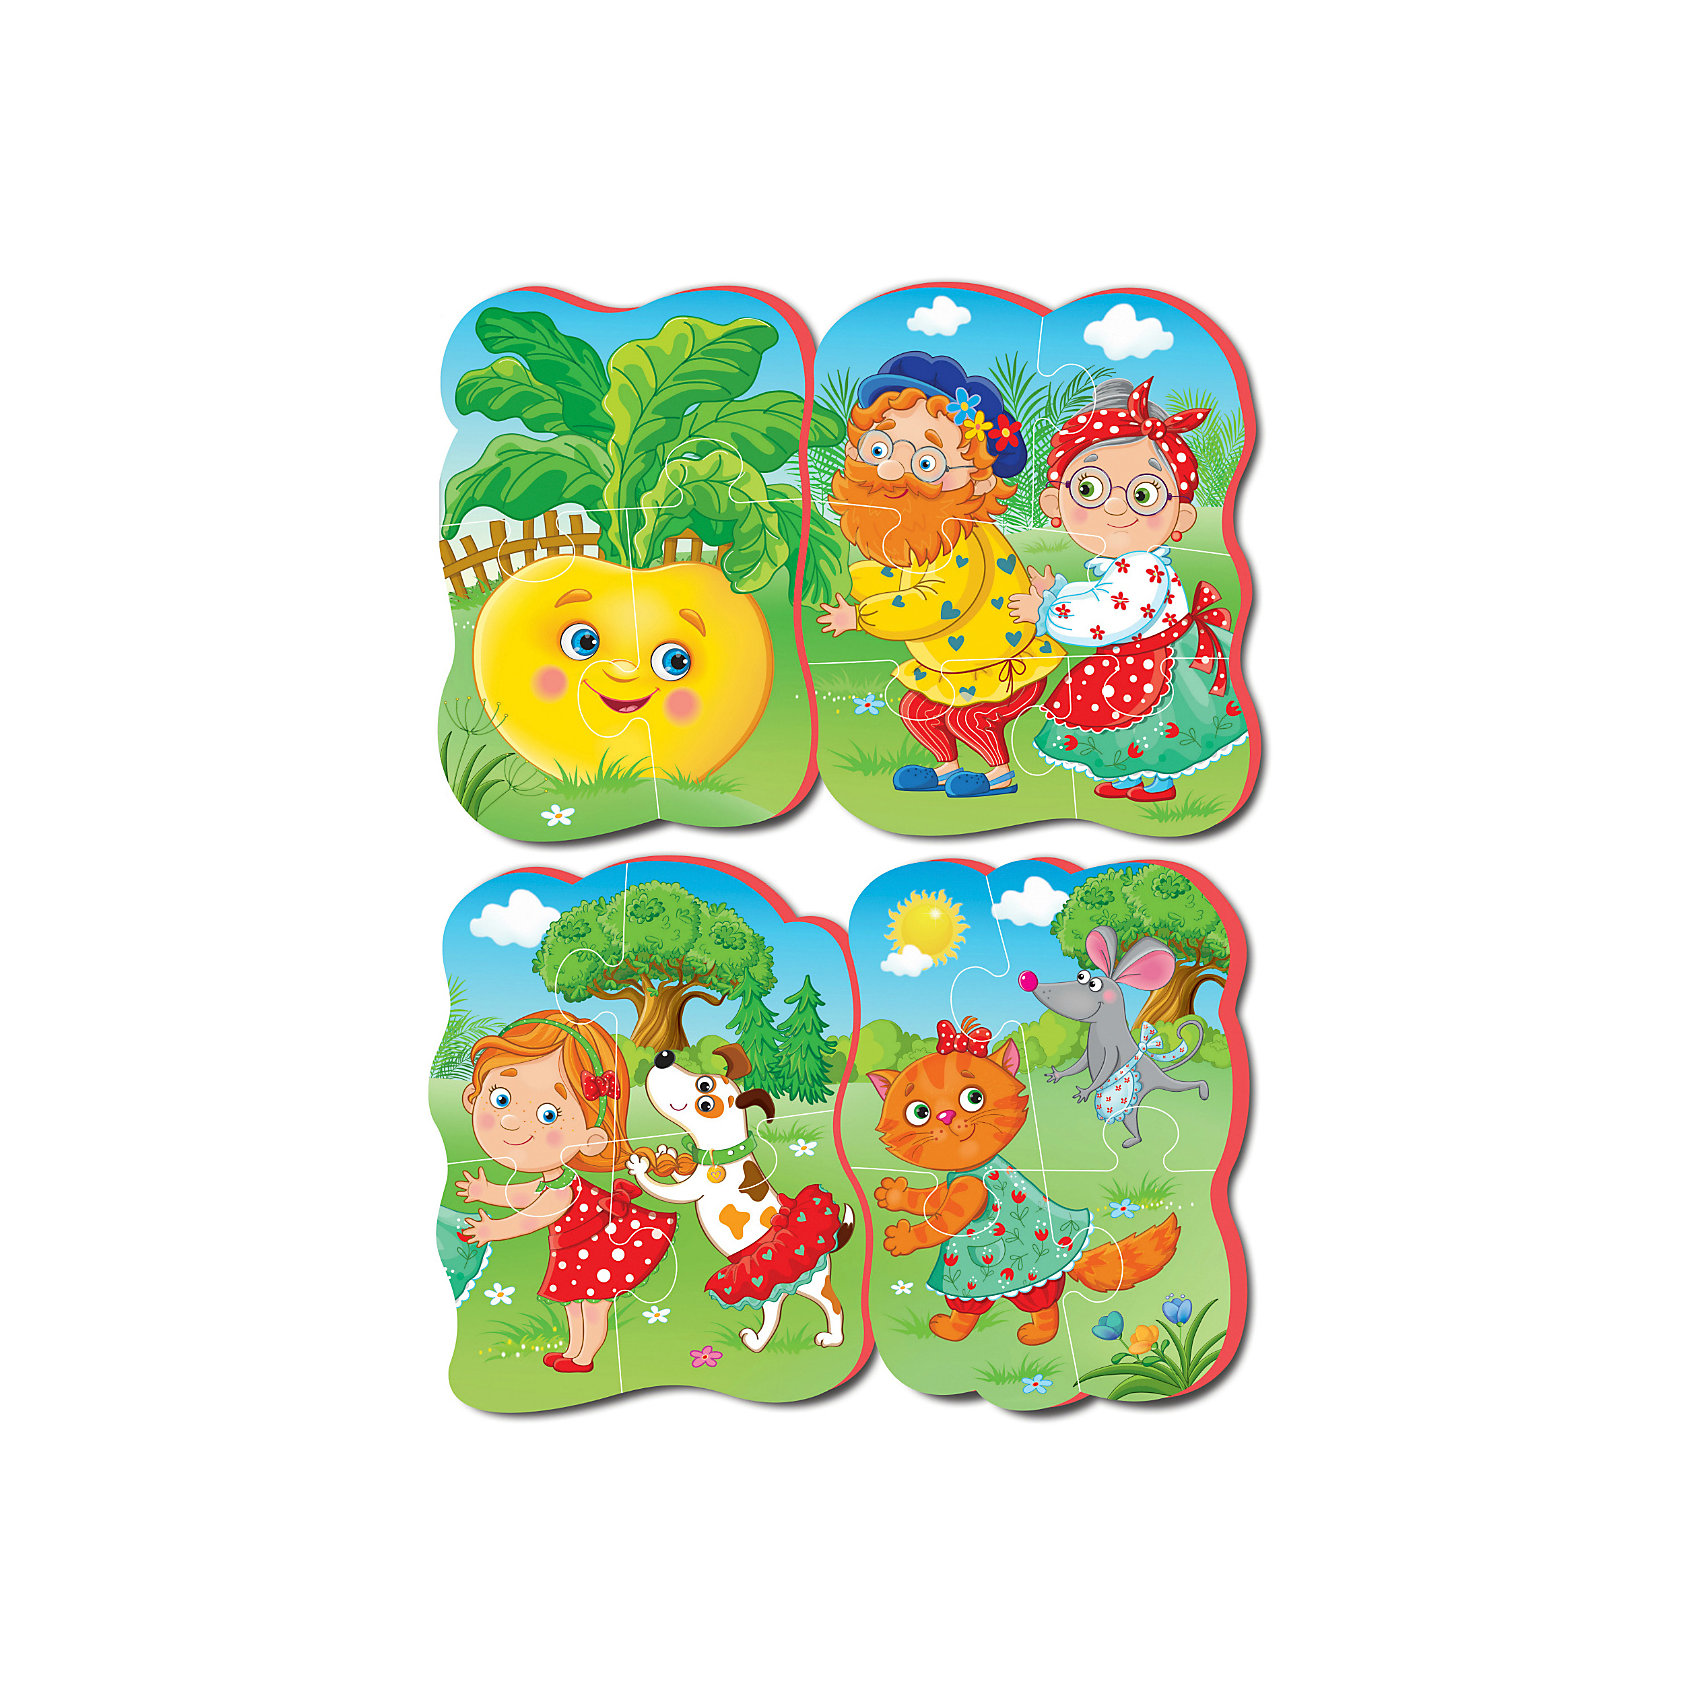 Vladi Toys Мягкие пазлы Репка, Vladi Toys пазлы vladi toys пазлы мягкие baby puzzle сказки репка